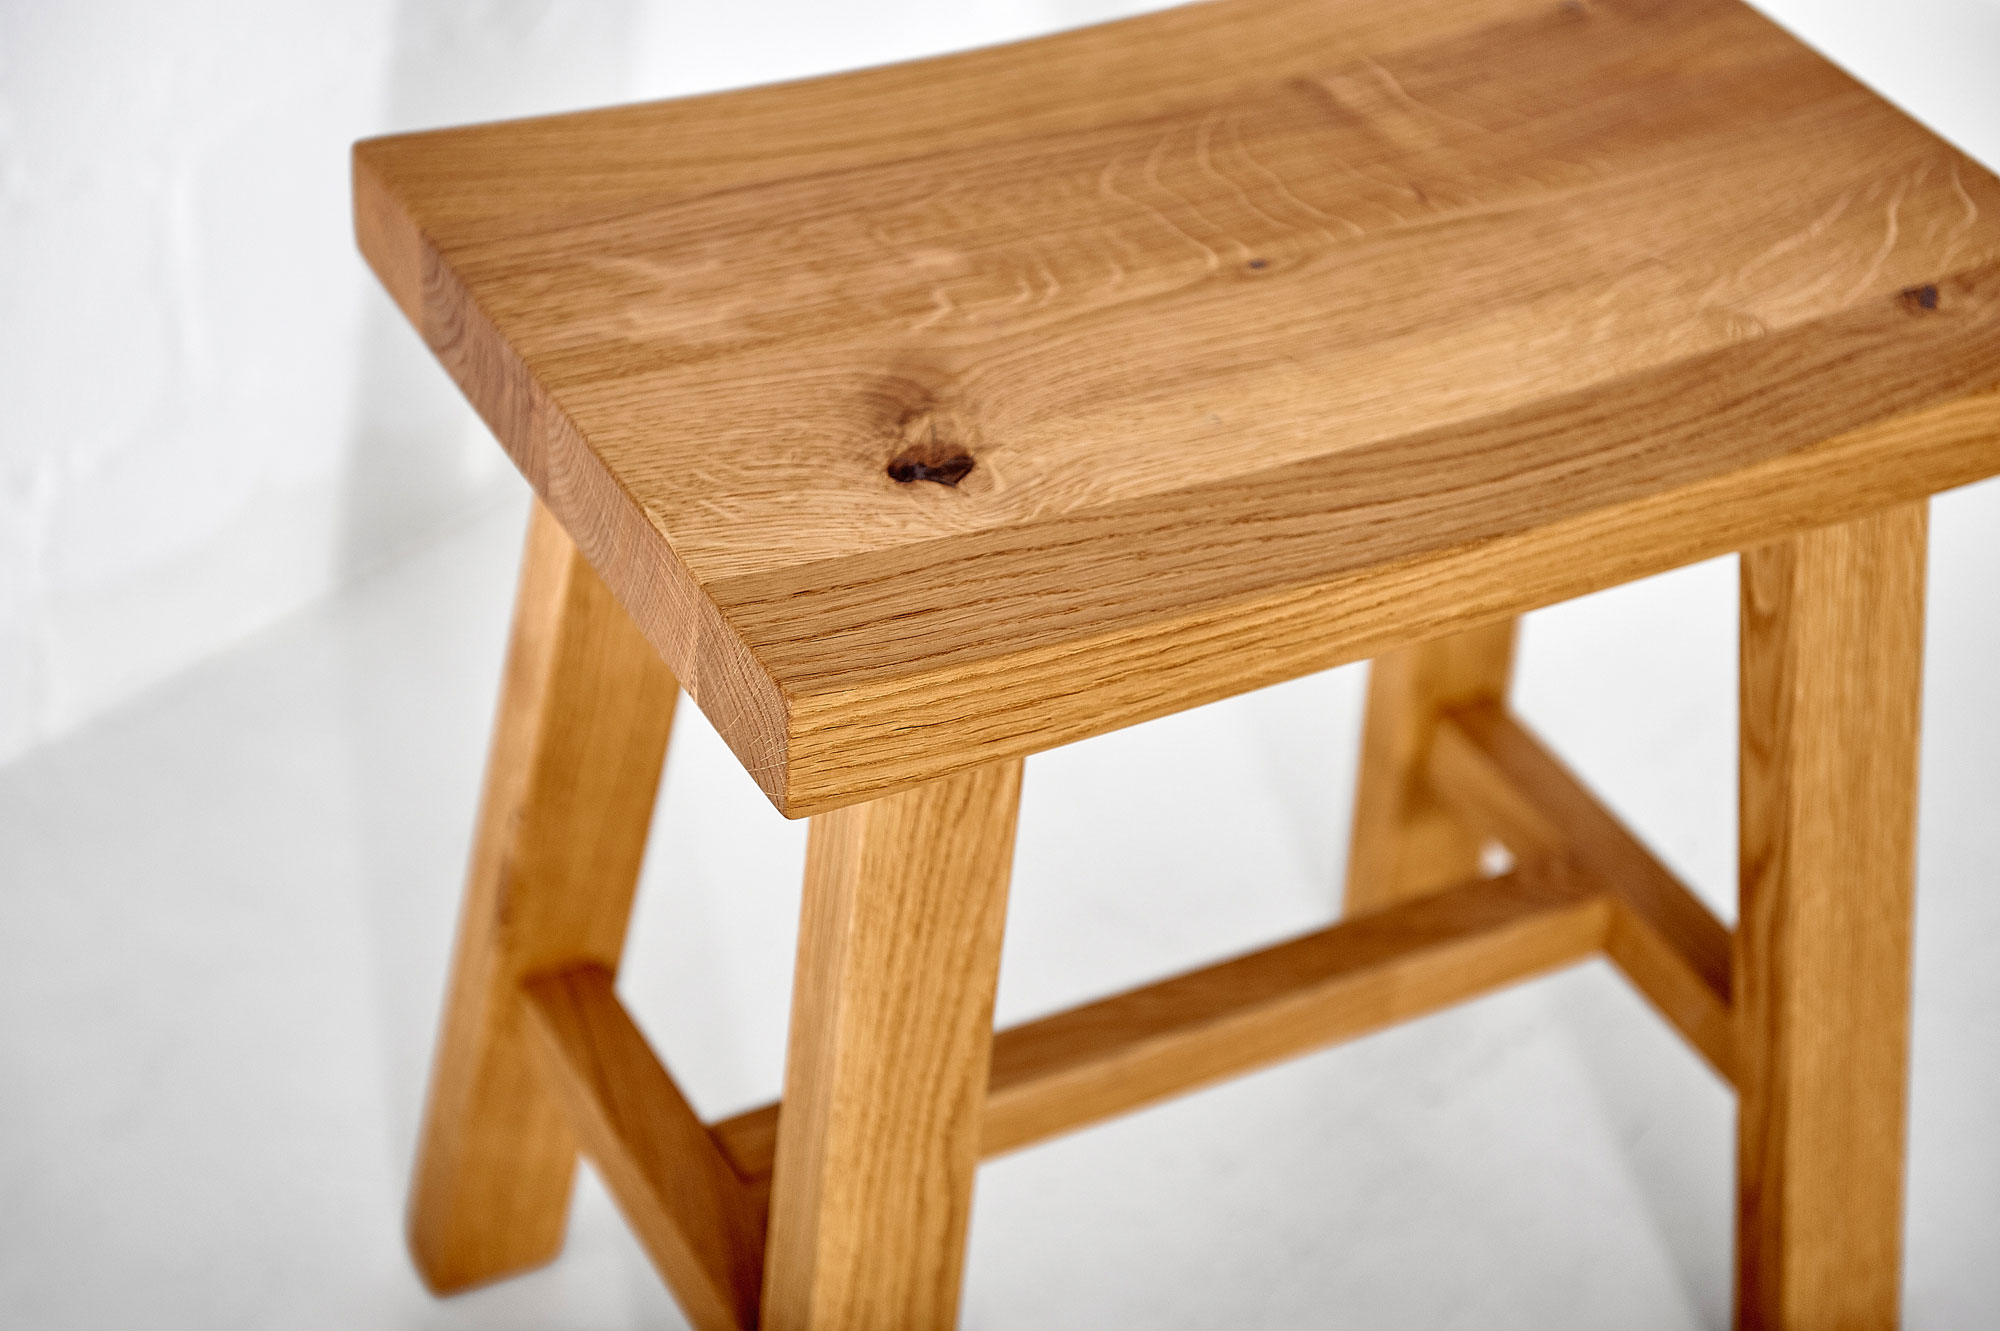 Wooden Stool TUBER Edited custom made in solid wood by vitamin design